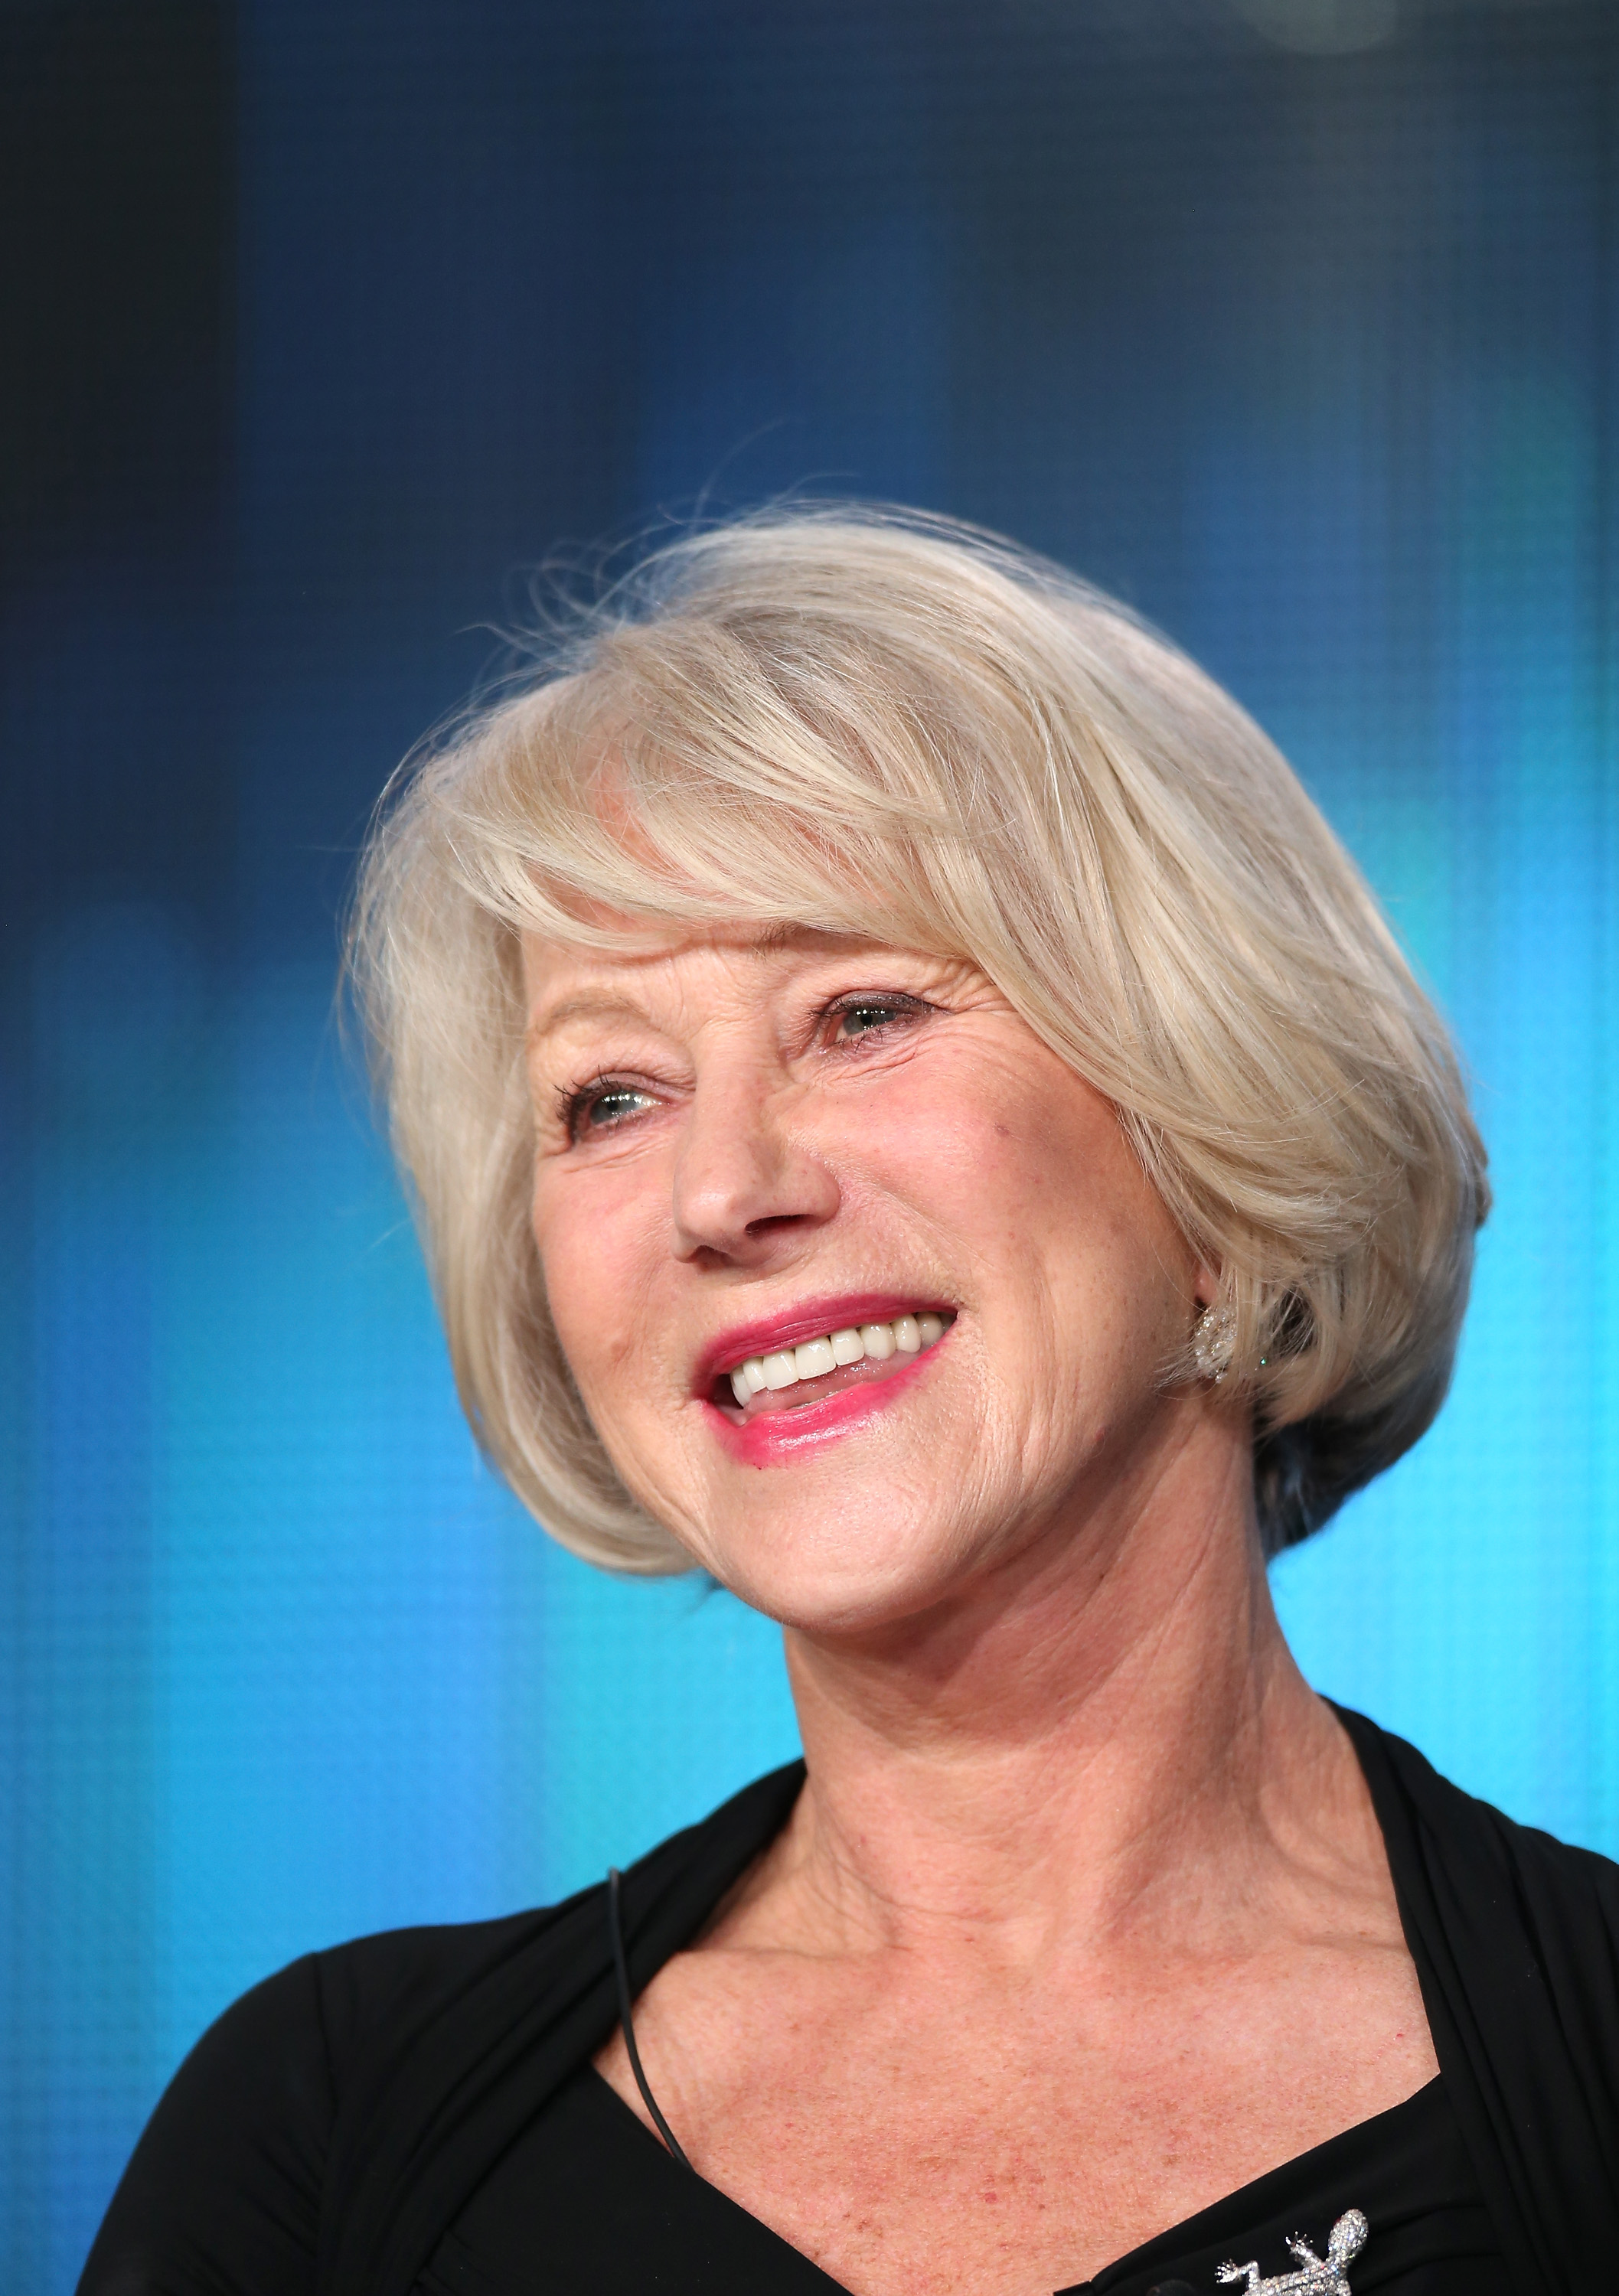 Helen mirren hairstyle 30 awe inspiring hairstyles for women over 60